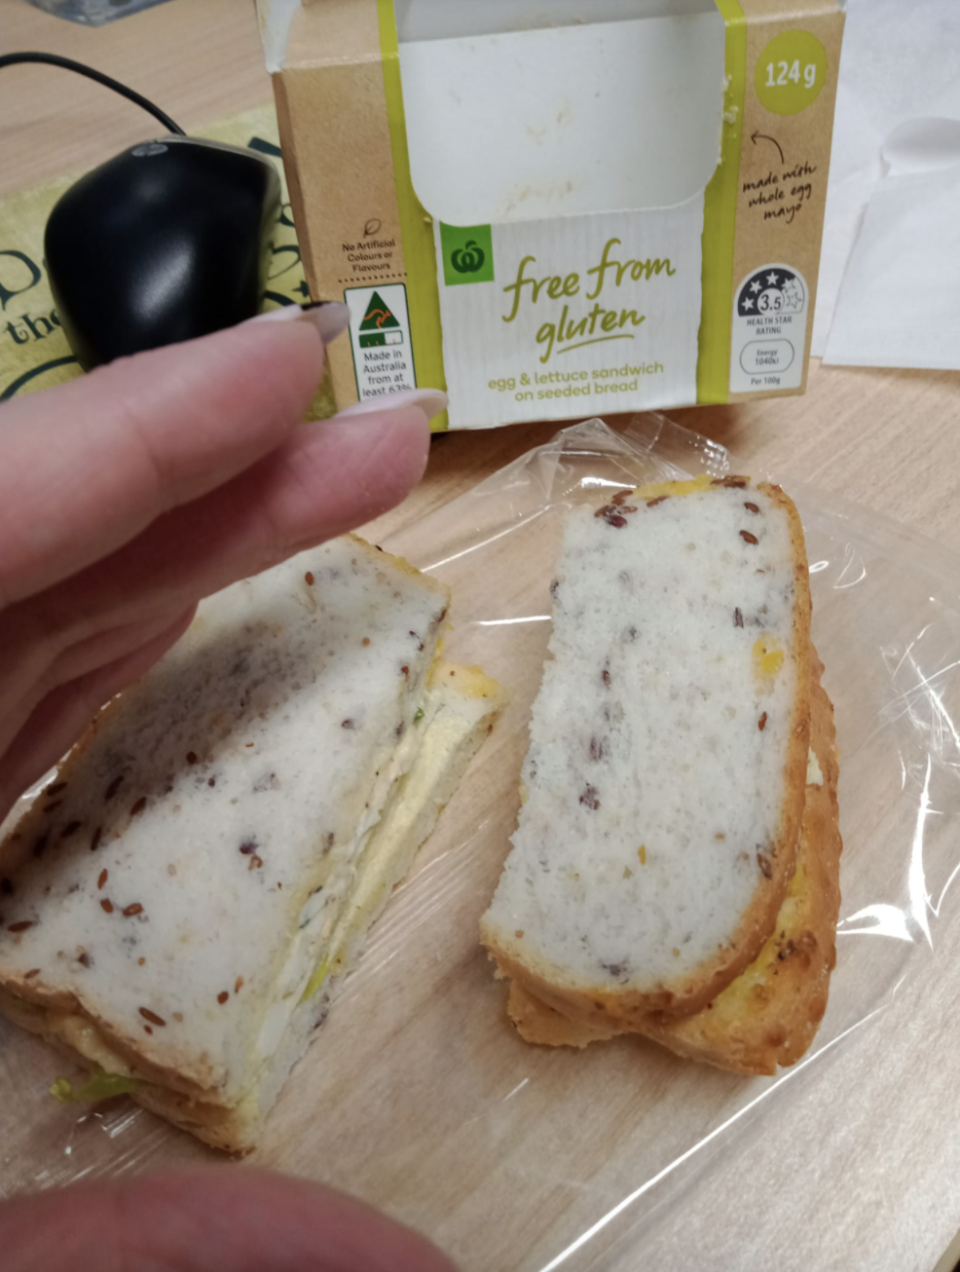 Woolworths' gluten free egg and lettuce sandwich.